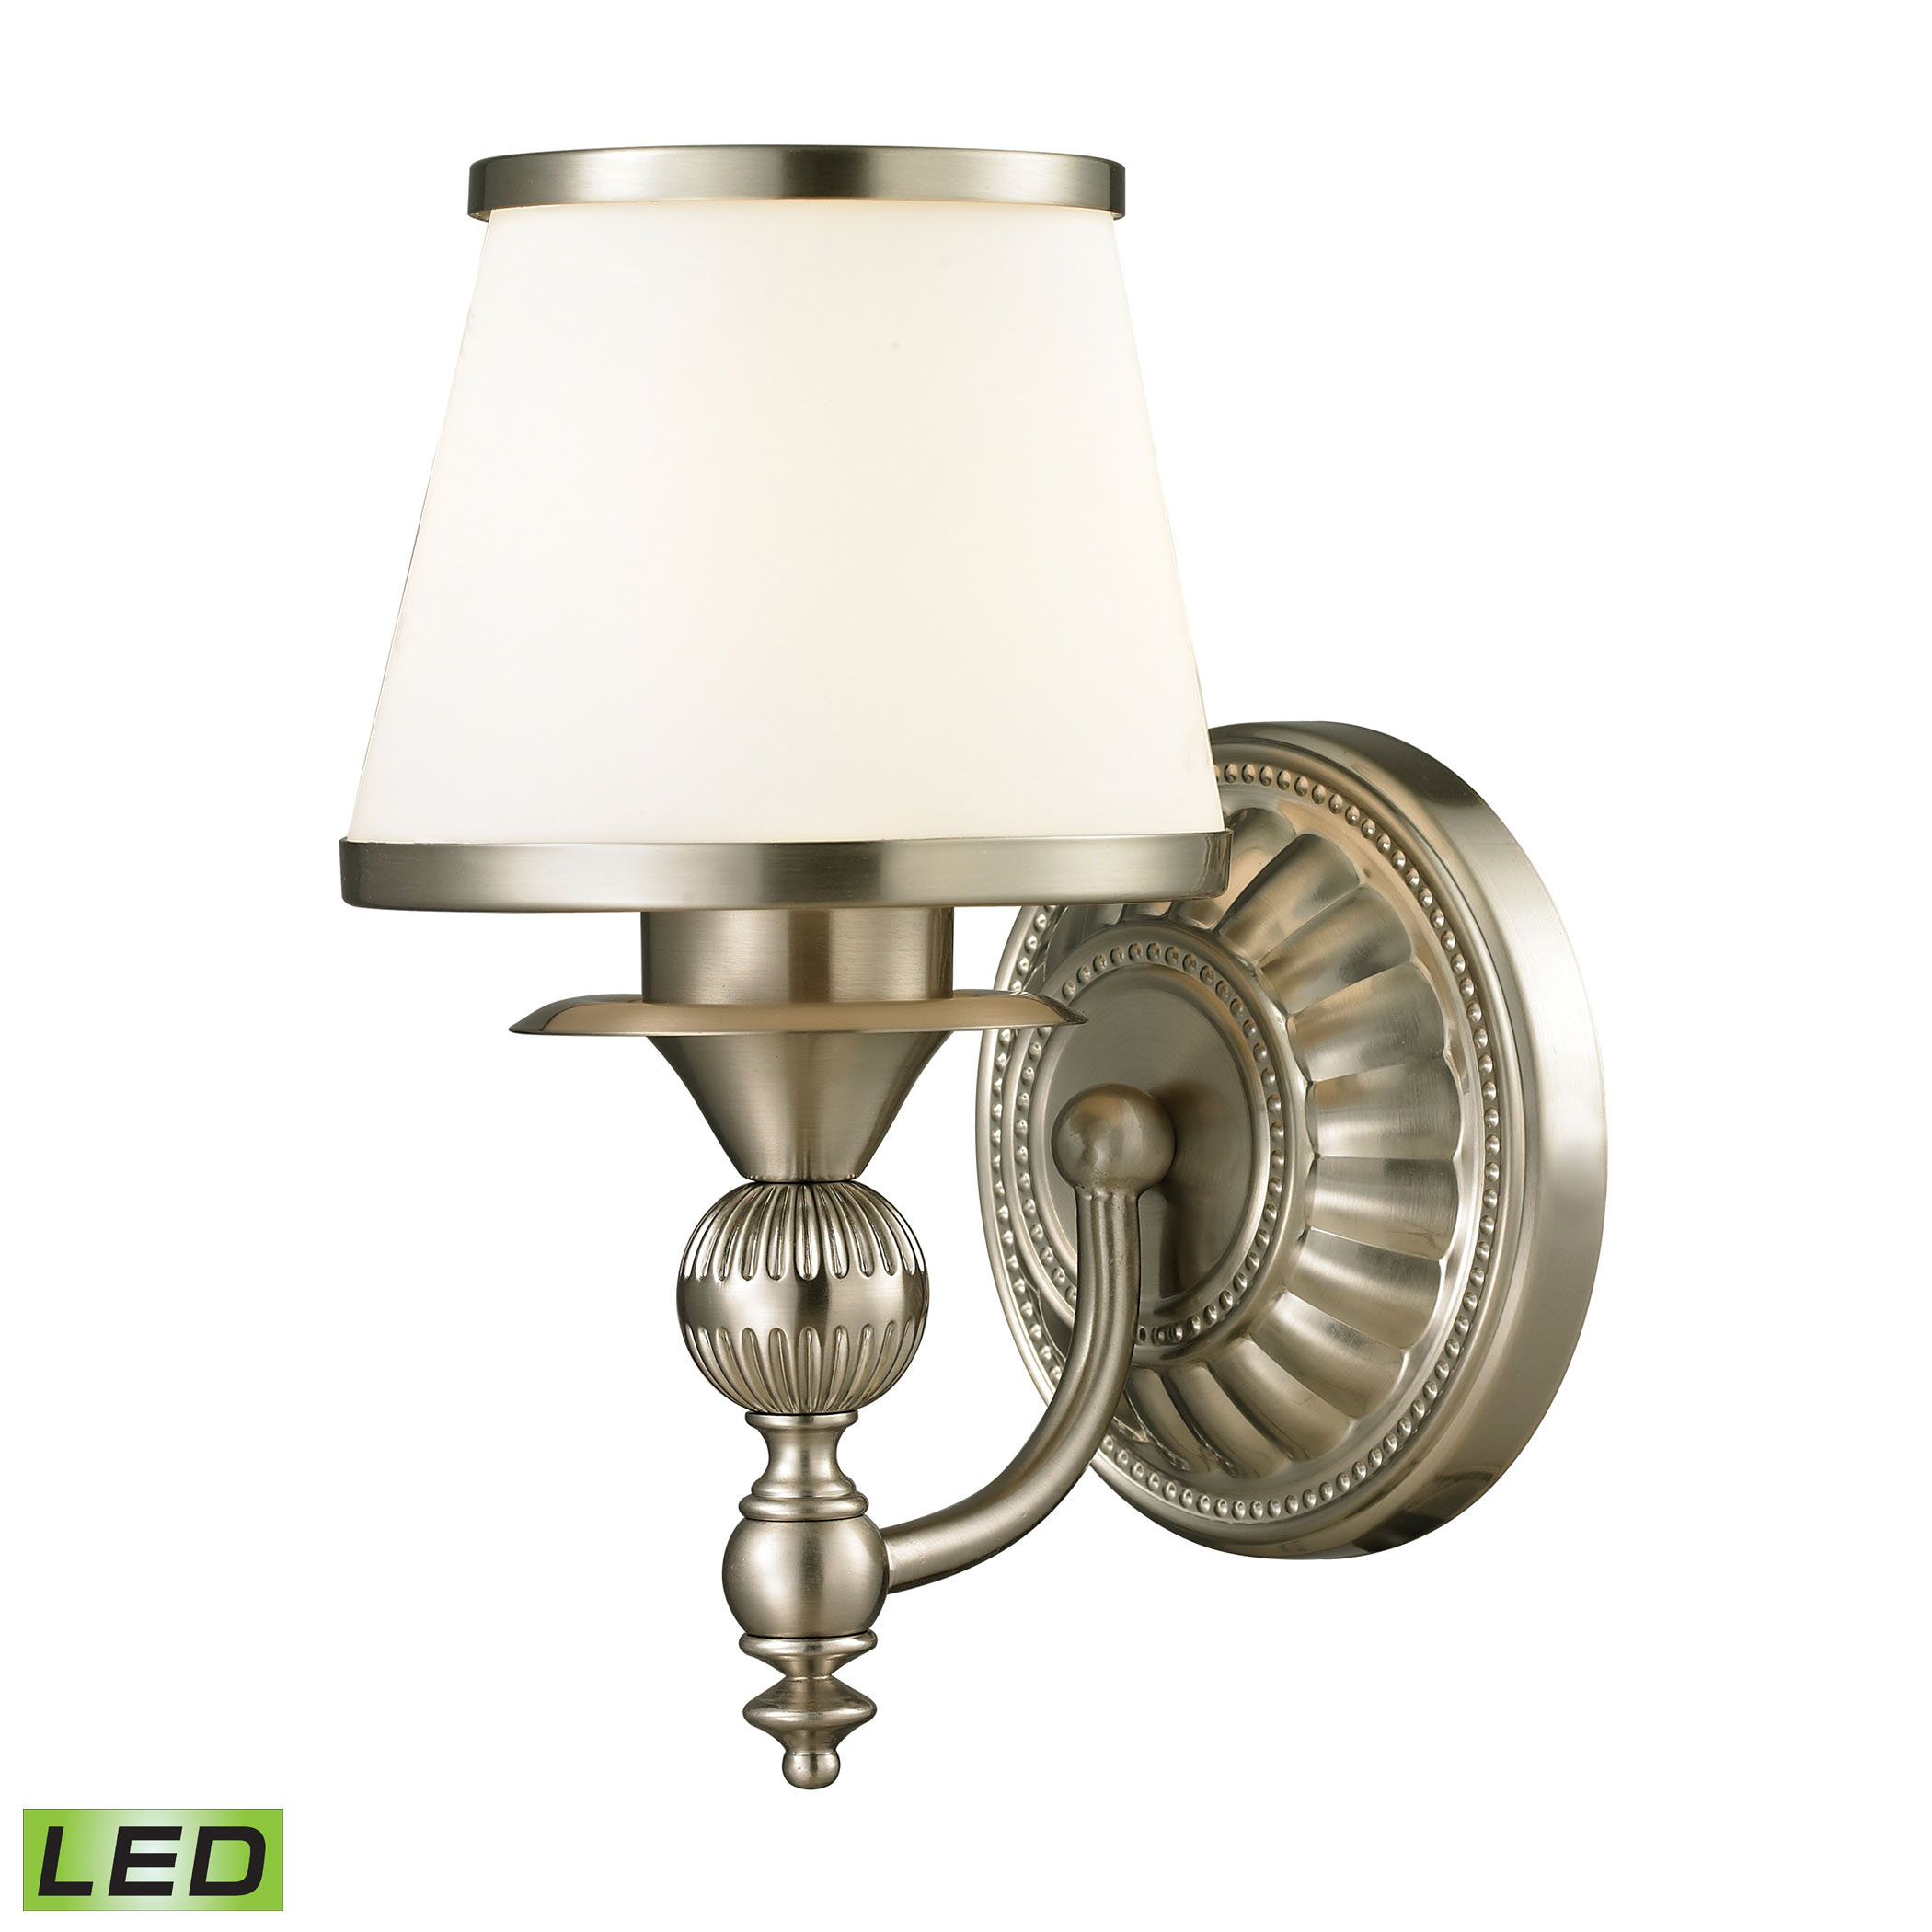 Smithfield Collection 1 Light Bath in Brushed Nickel - LED Offering Up To 800 Lumens (60 Watt Equivalent)